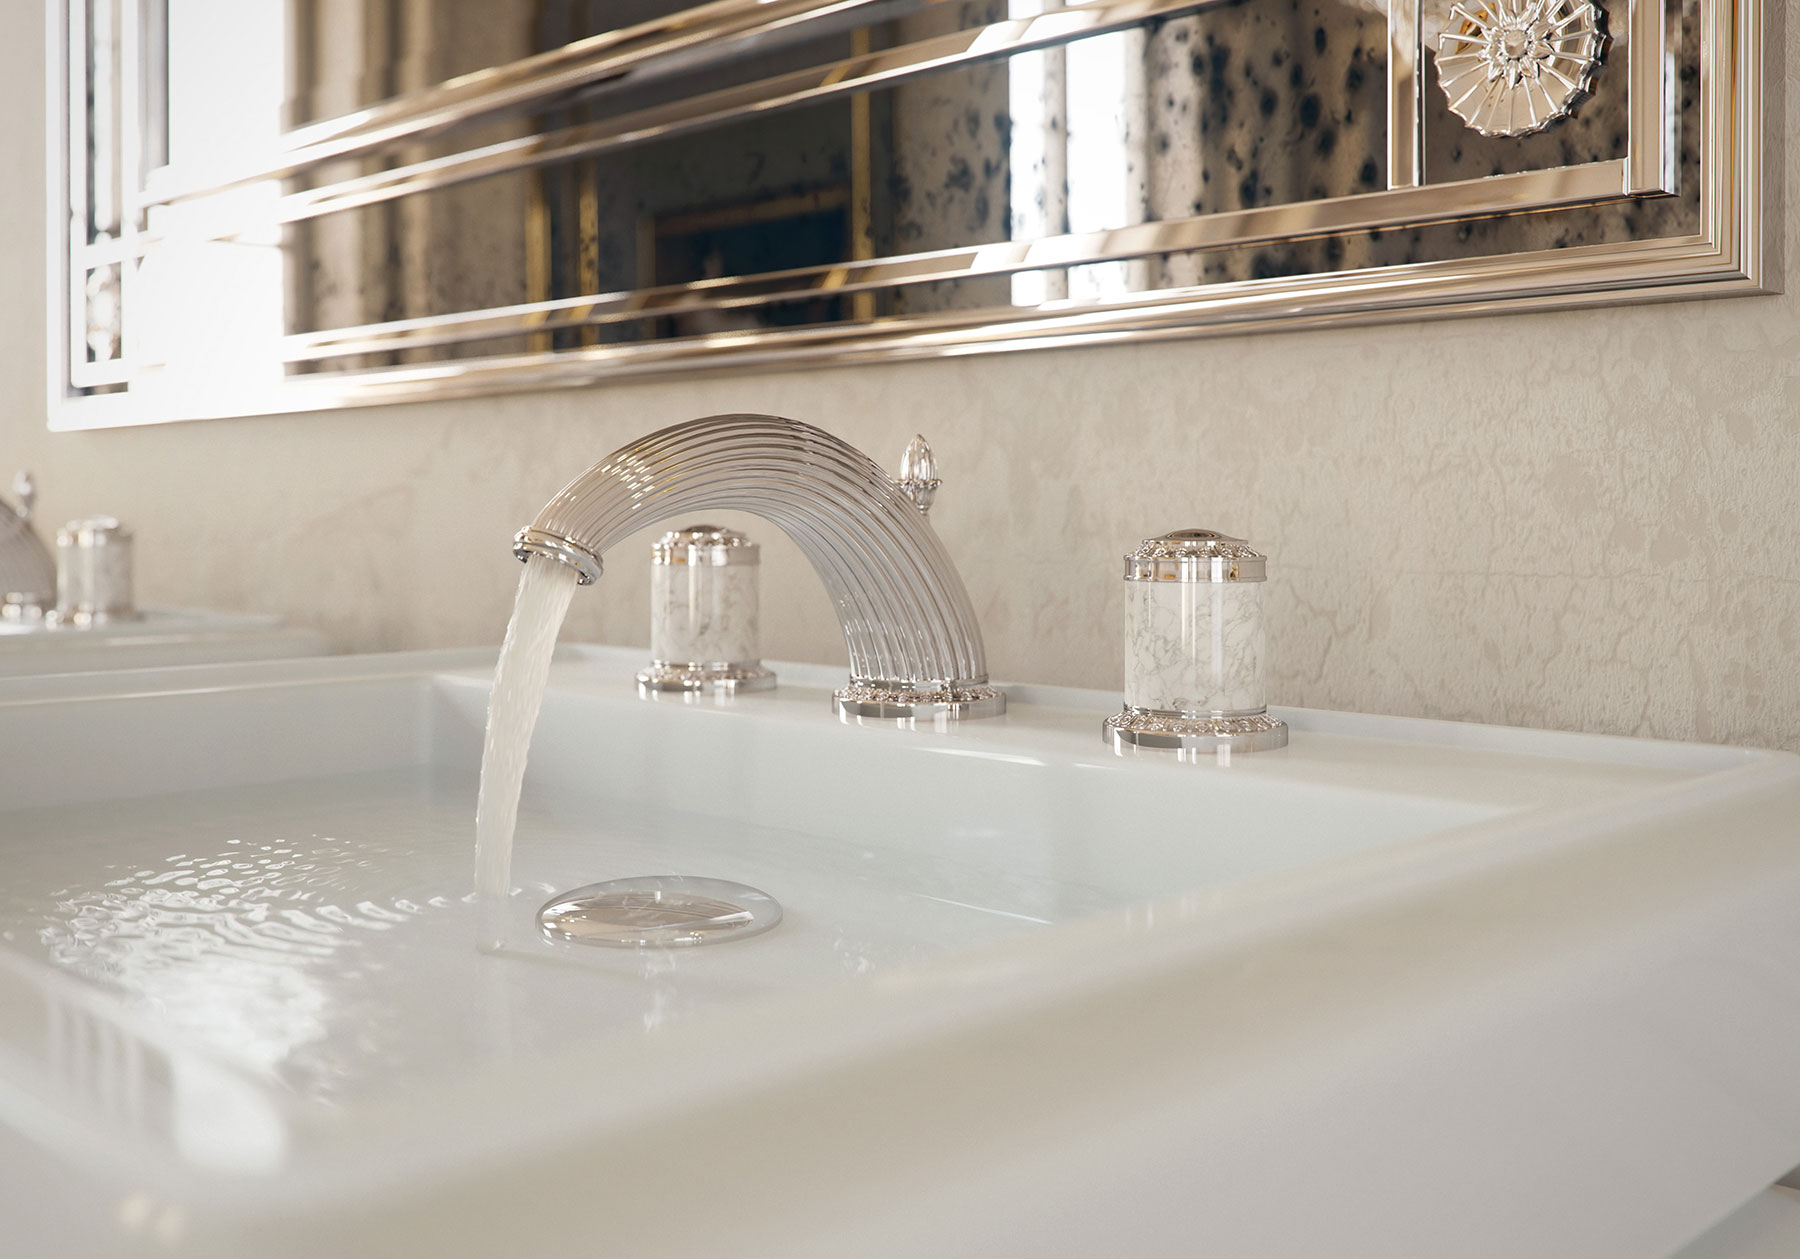 Transitional Malmaison Deck Mount Faucet